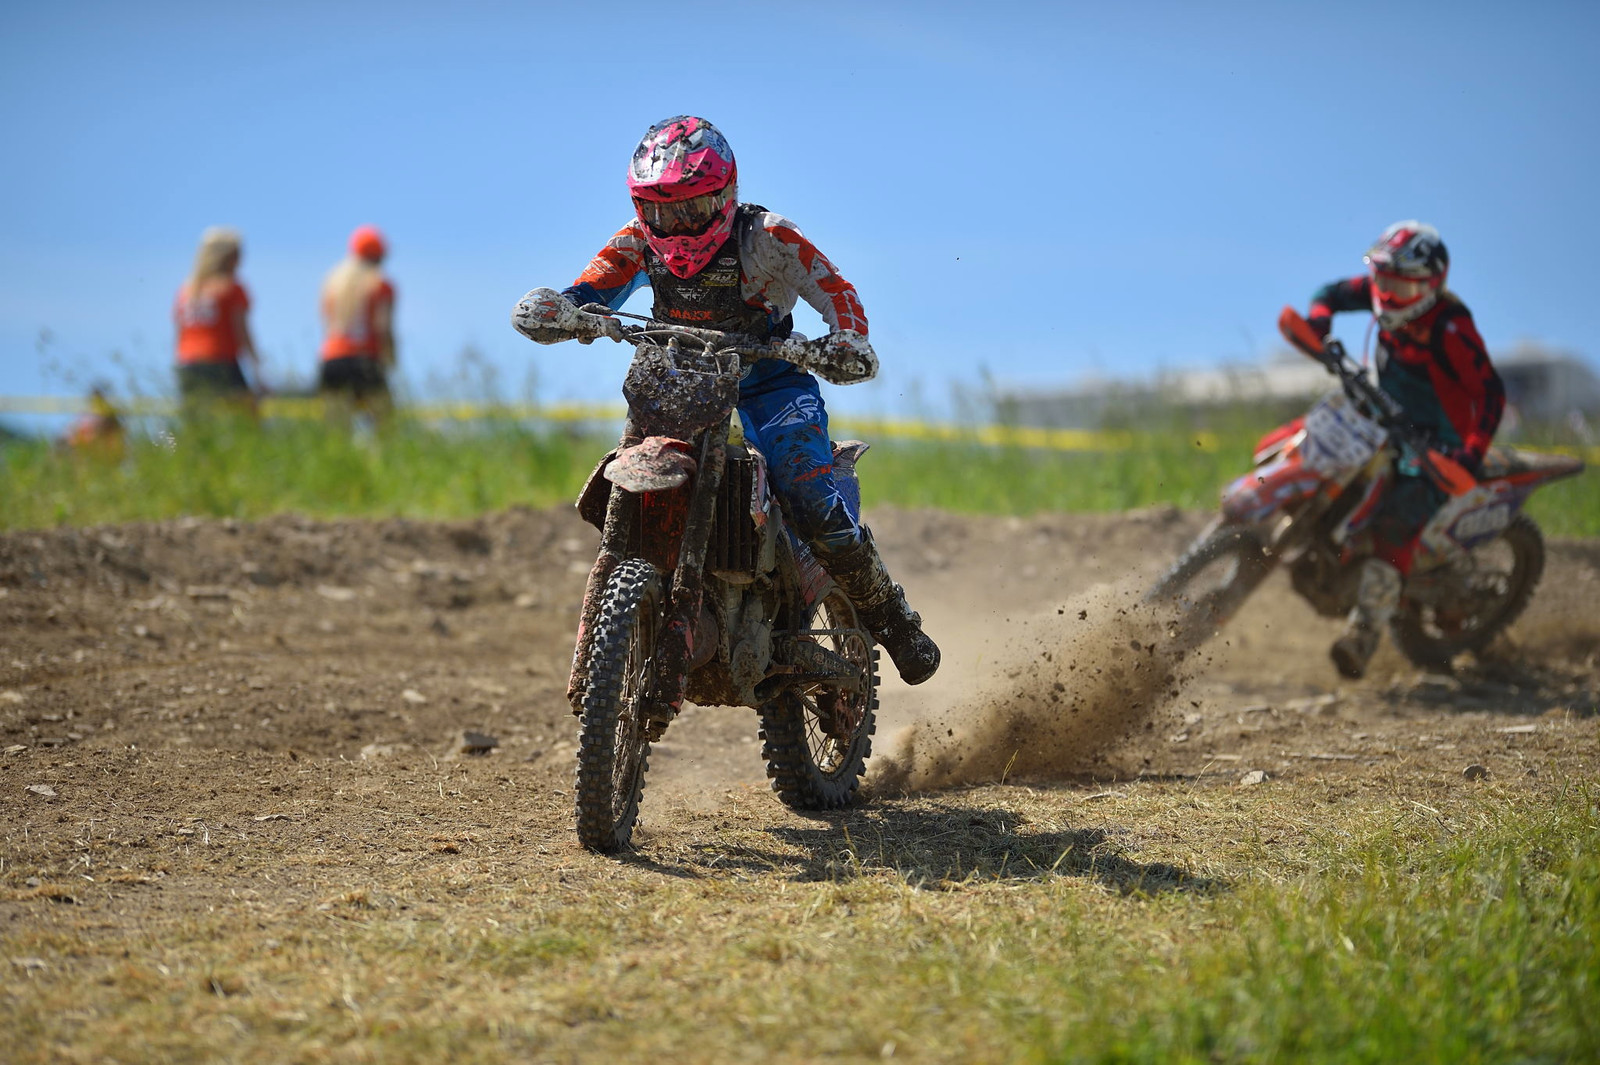 Becca Sheets and Mackenzie Tricker - Tomahawk GNCC - Motocross Pictures - Vital MX